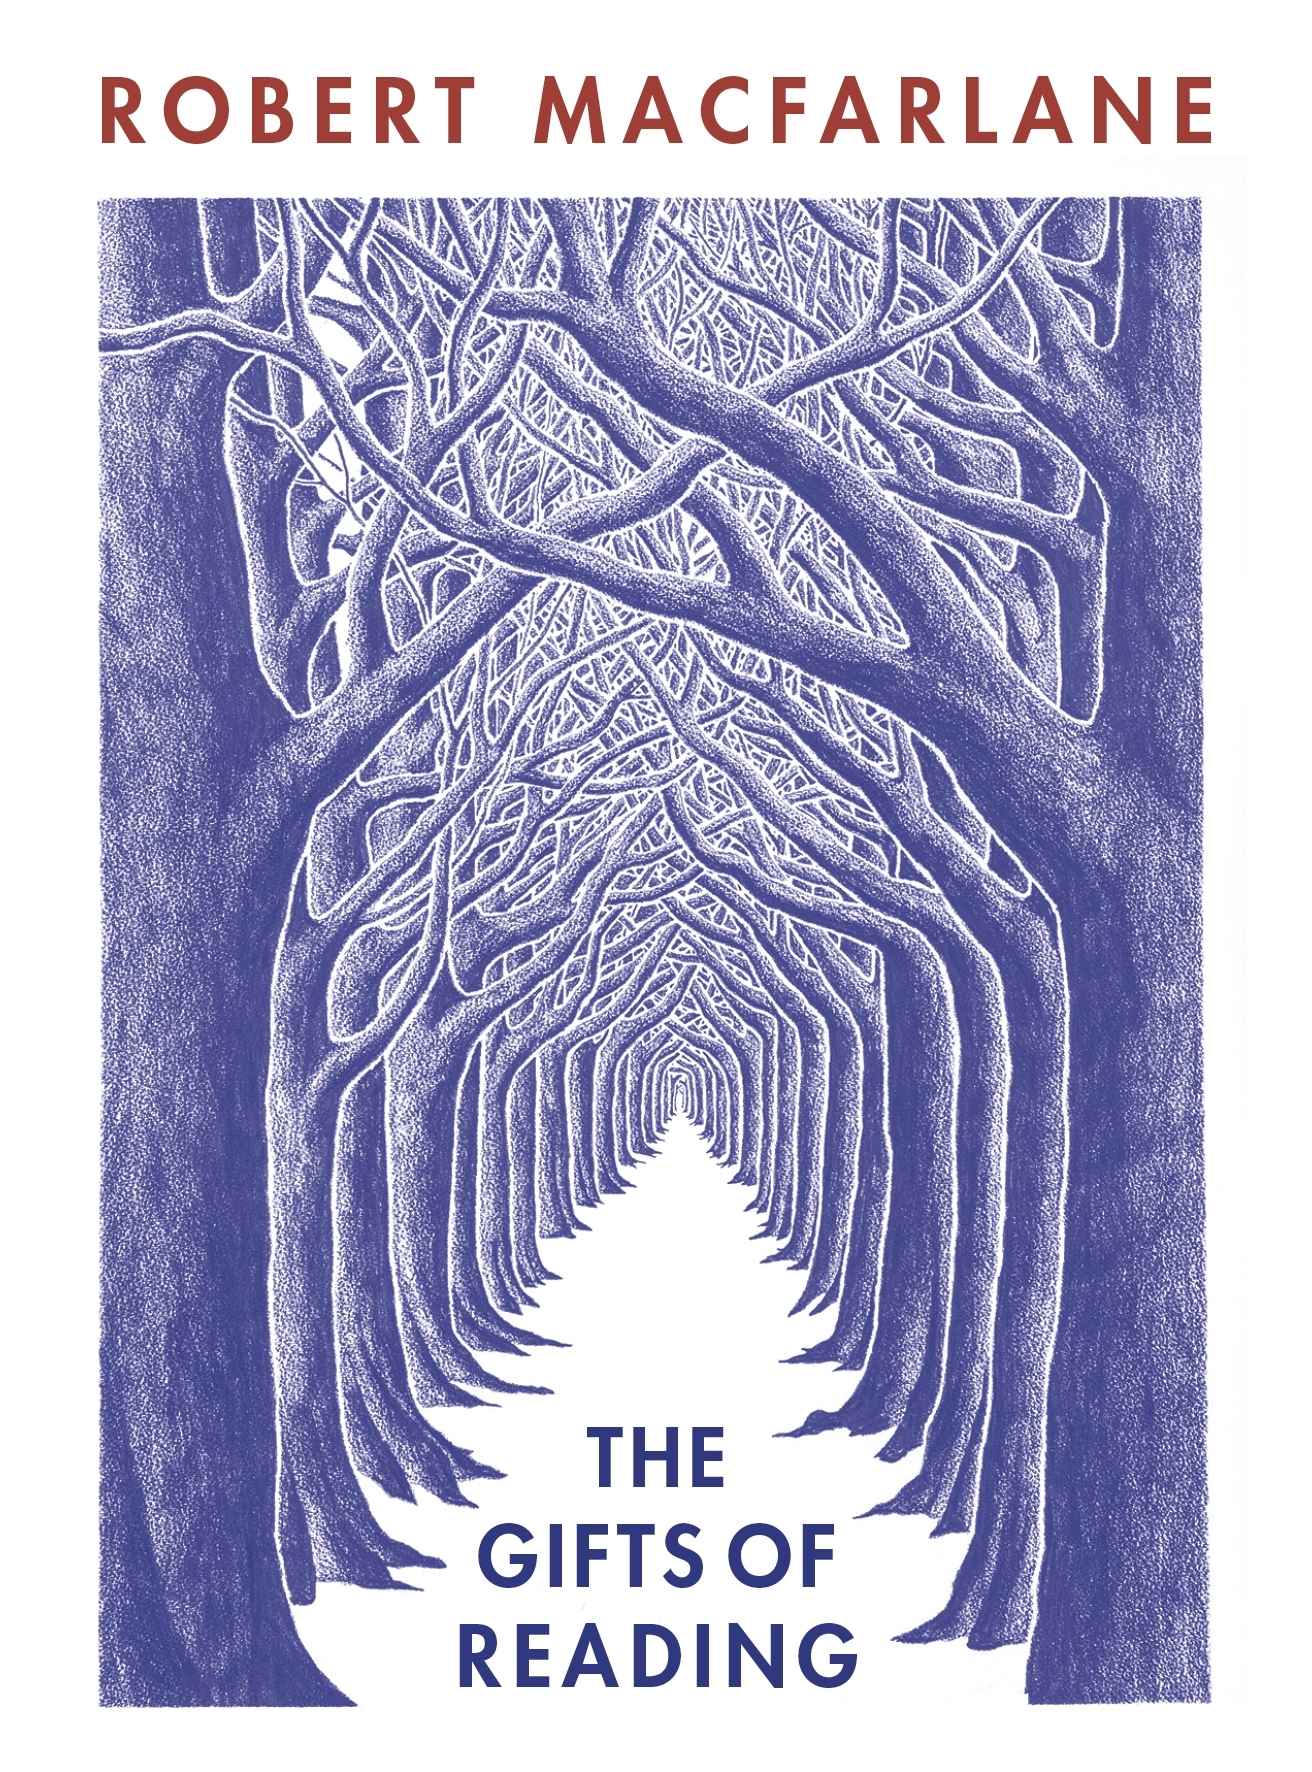 Penguin Book Cover Gifts : The gifts of reading by robert macfarlane penguin books